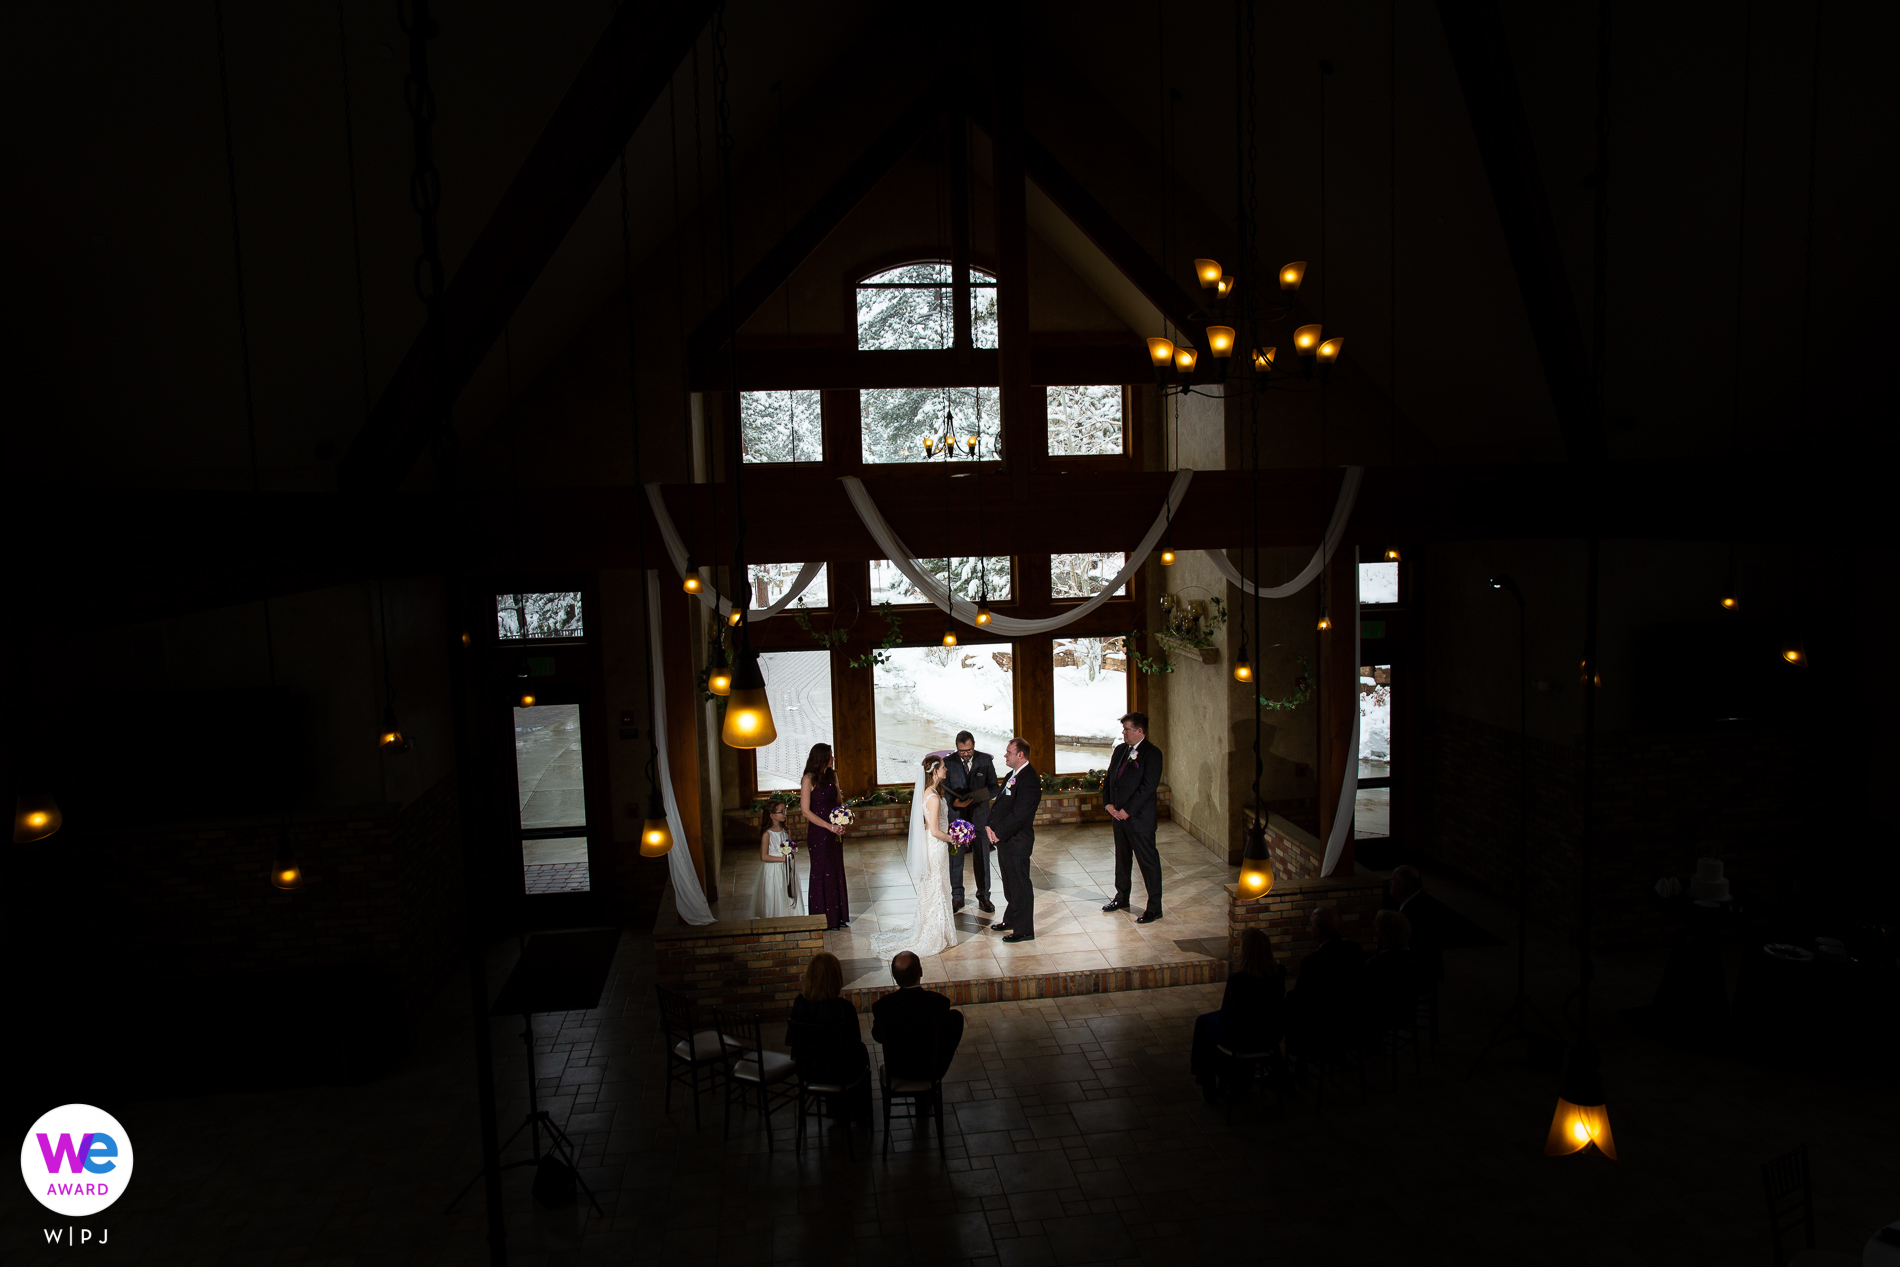 Estes Park, Colorado Elopement Photographer | Only a few chairs were needed for the couple's parents to witness their COVID-19 ceremony